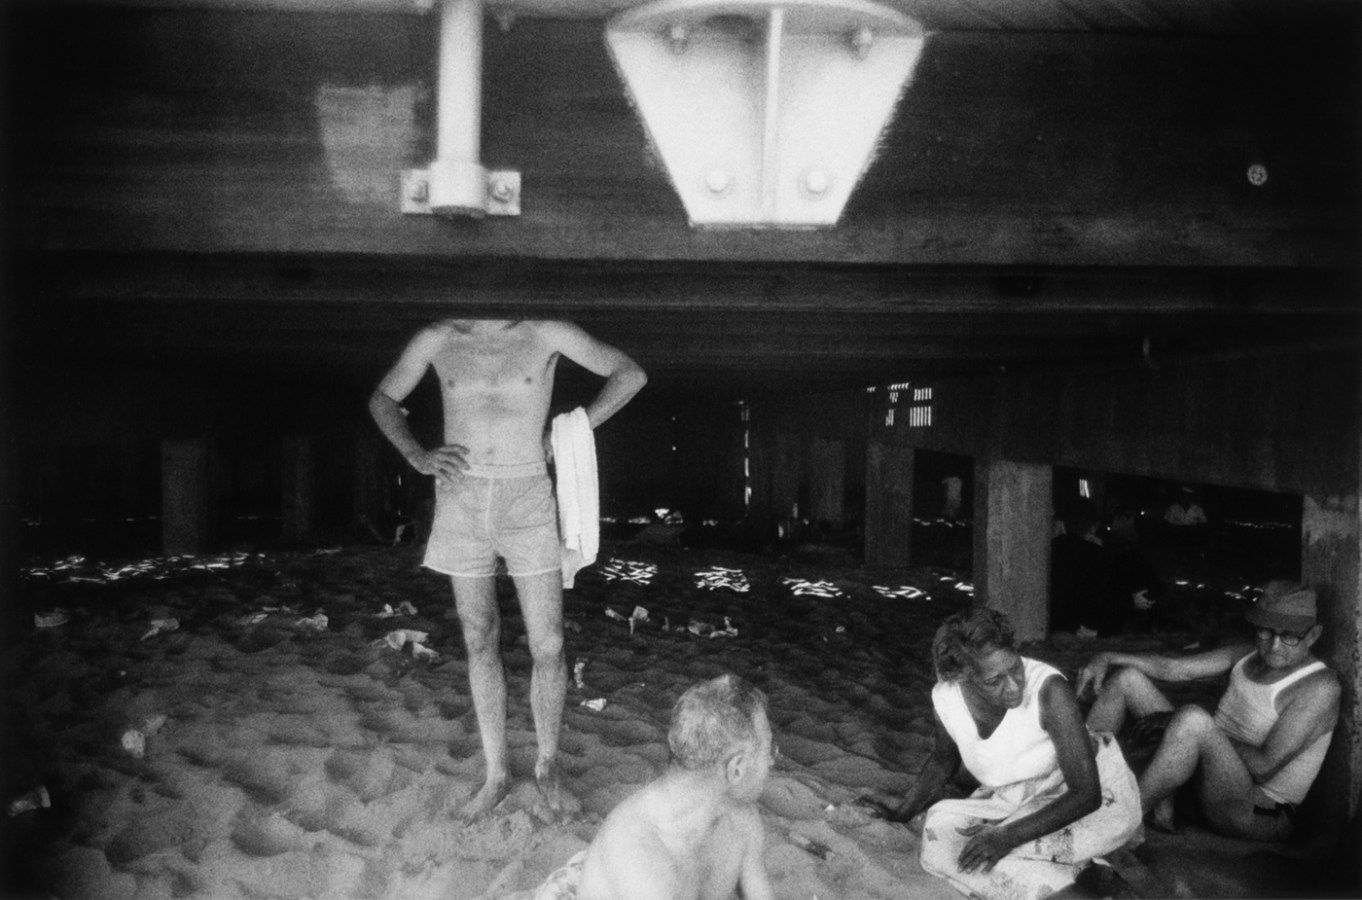 Black-and-white photograph of people in bathing suits beneath a boardwalk